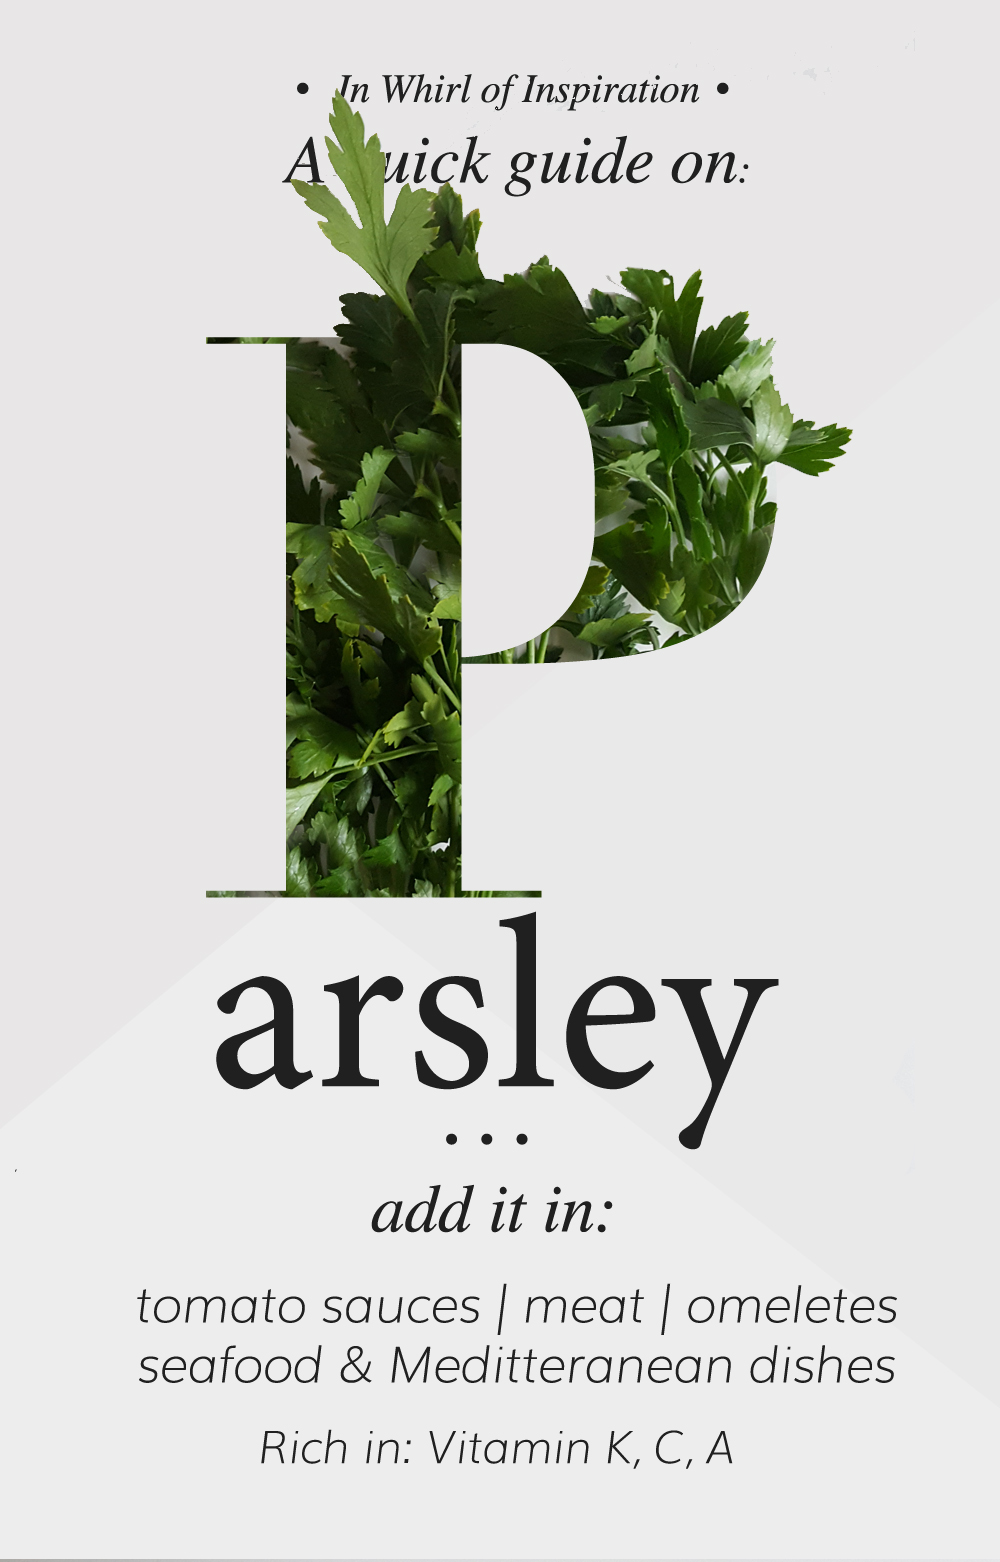 Spice series: Parsley - usage in kitchen & health benefits | by IN WHIRL OF INSPIRATION